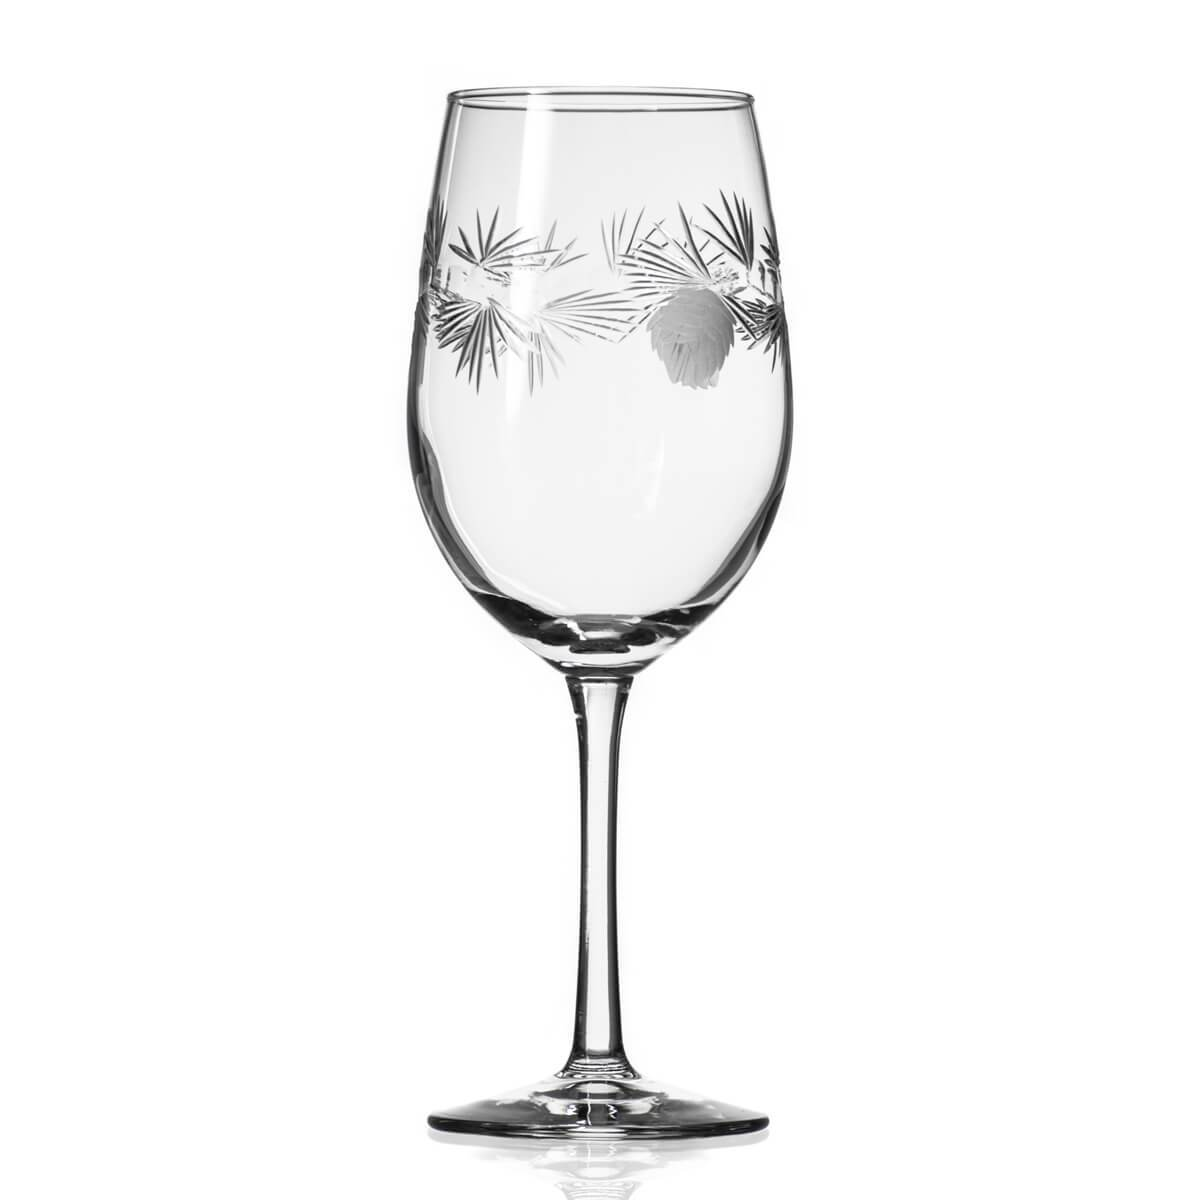 Rolf Glass - Icy Pine 12oz White Wine Glass